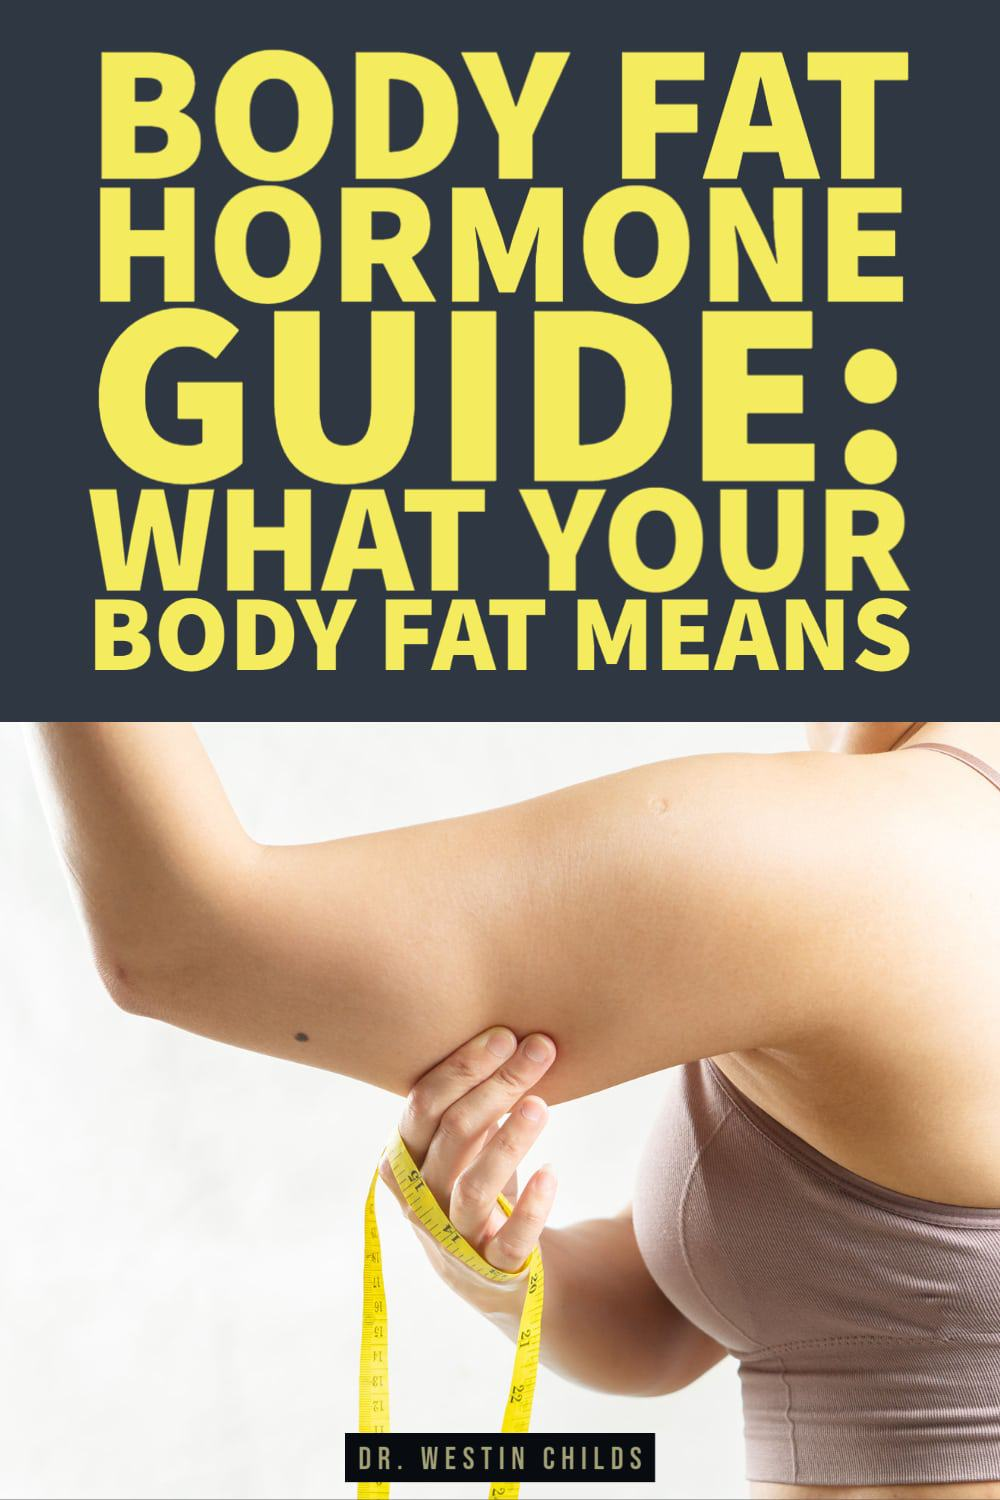 what your body fat means for your hormones